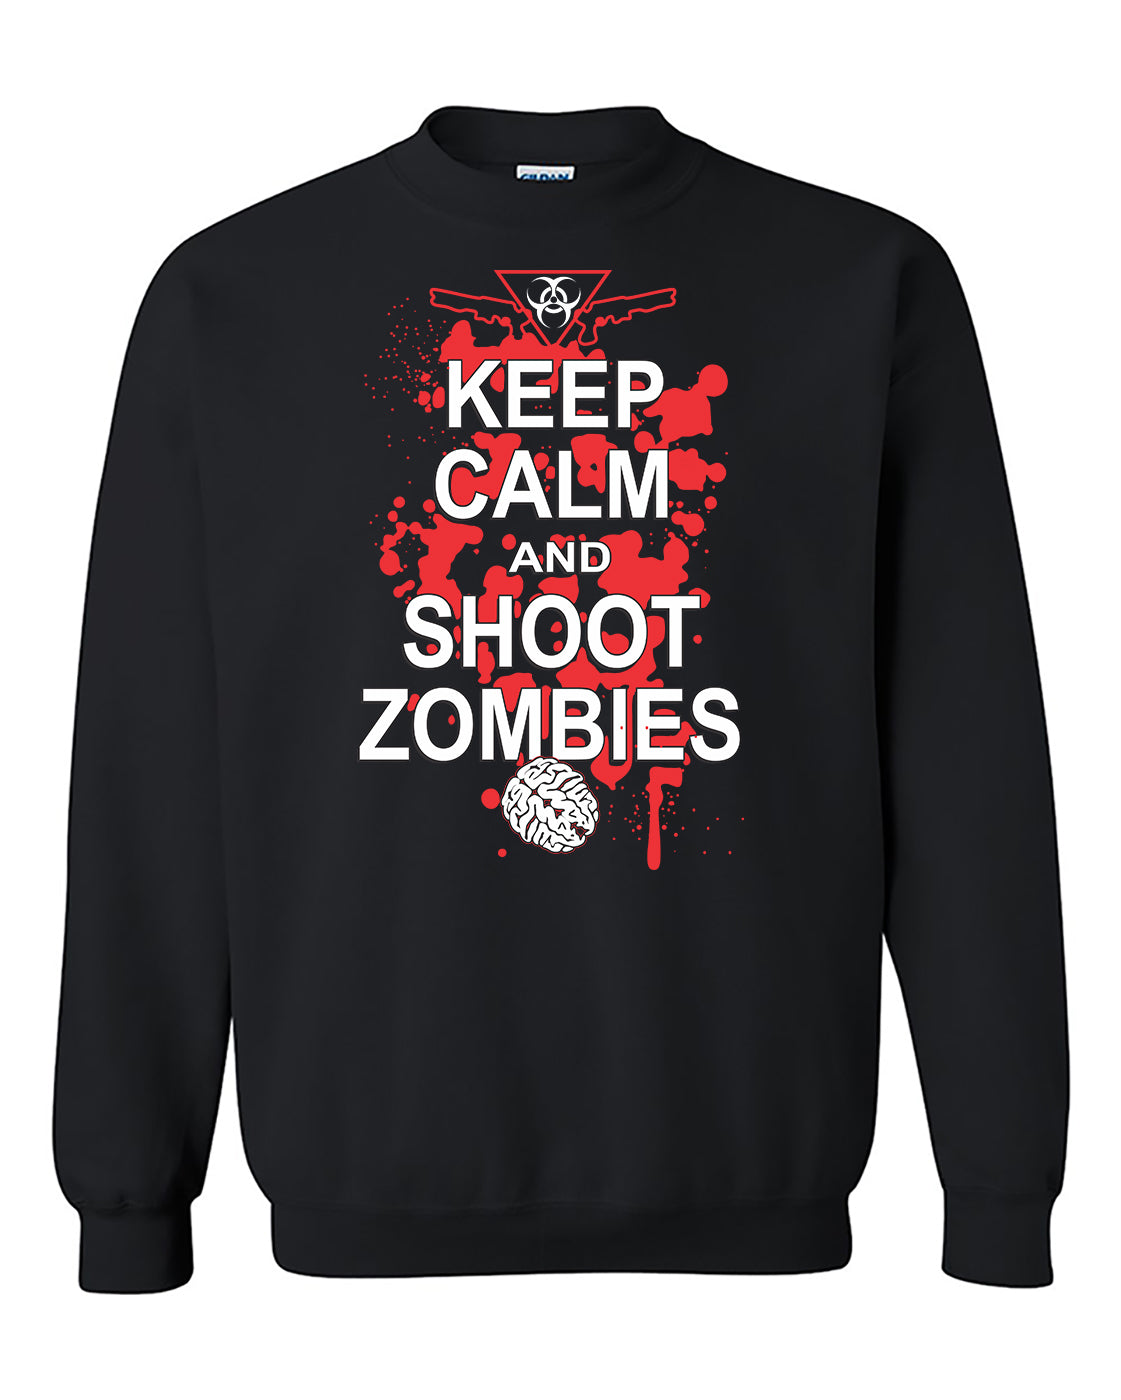 Keep Calm And Shoot Zombies Killer Funny Fashion Crewneck Sweater